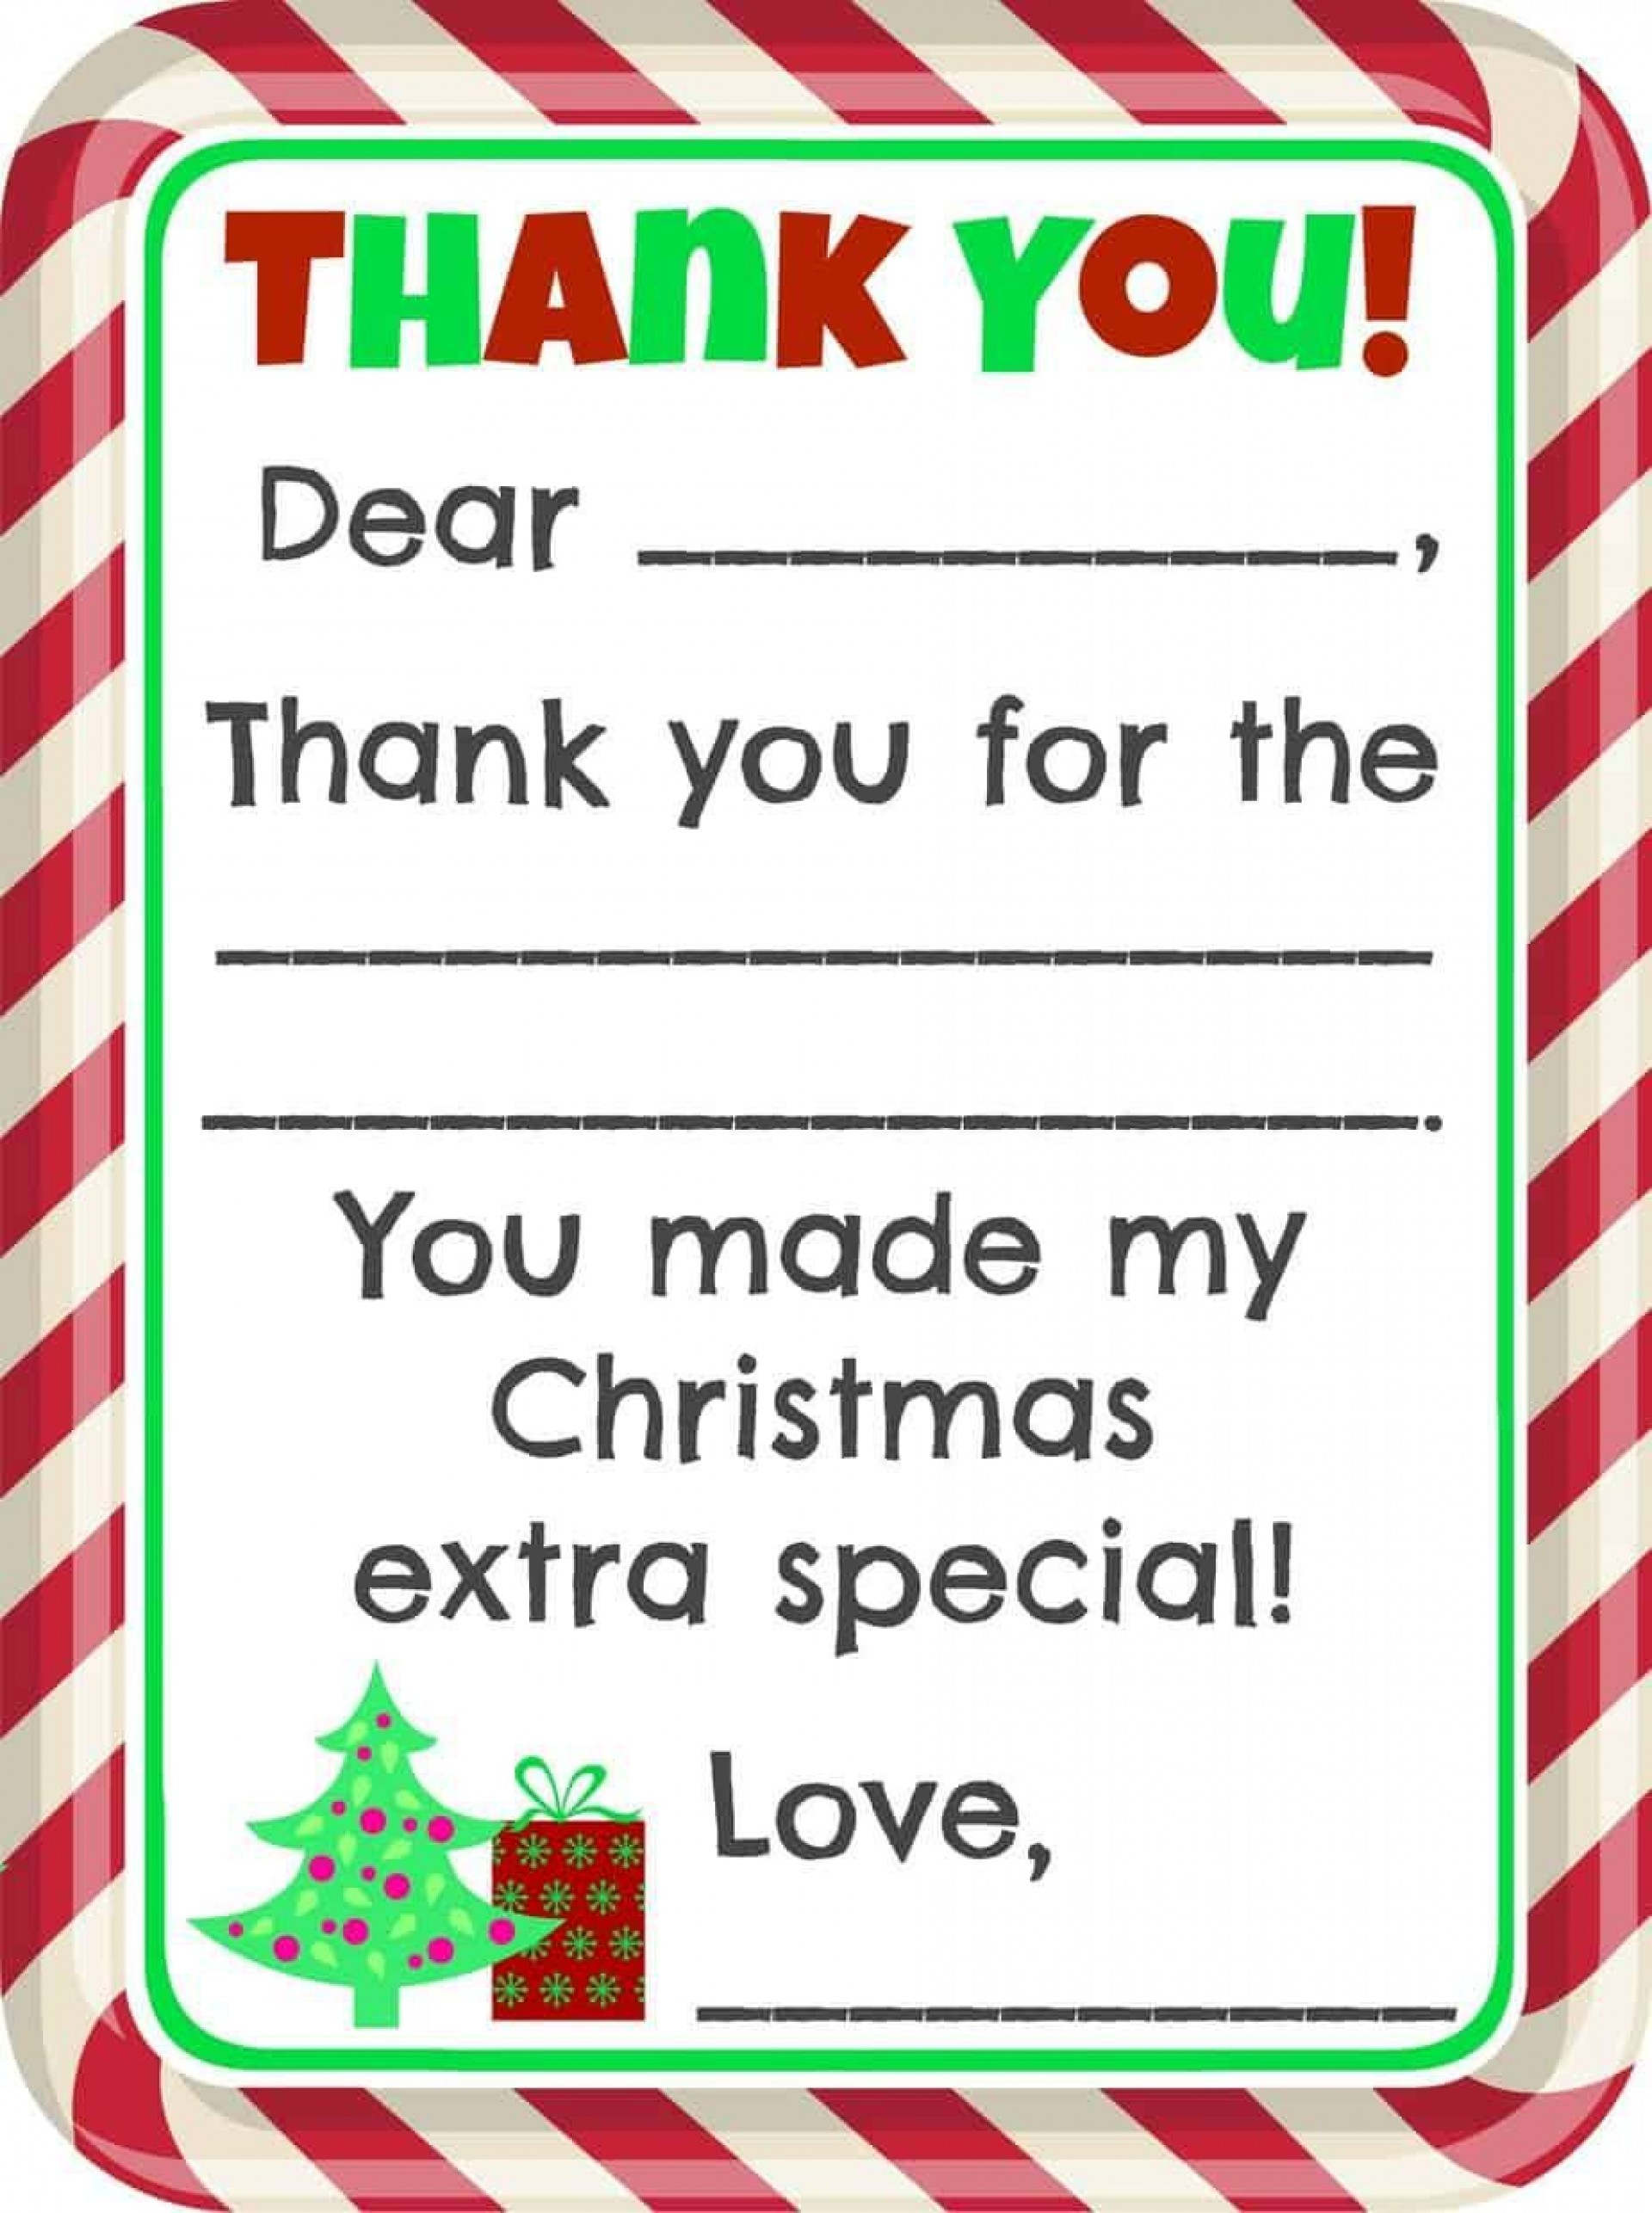 005 Marvelou Christma Thank You Note Template Free Image  Letter Card1920